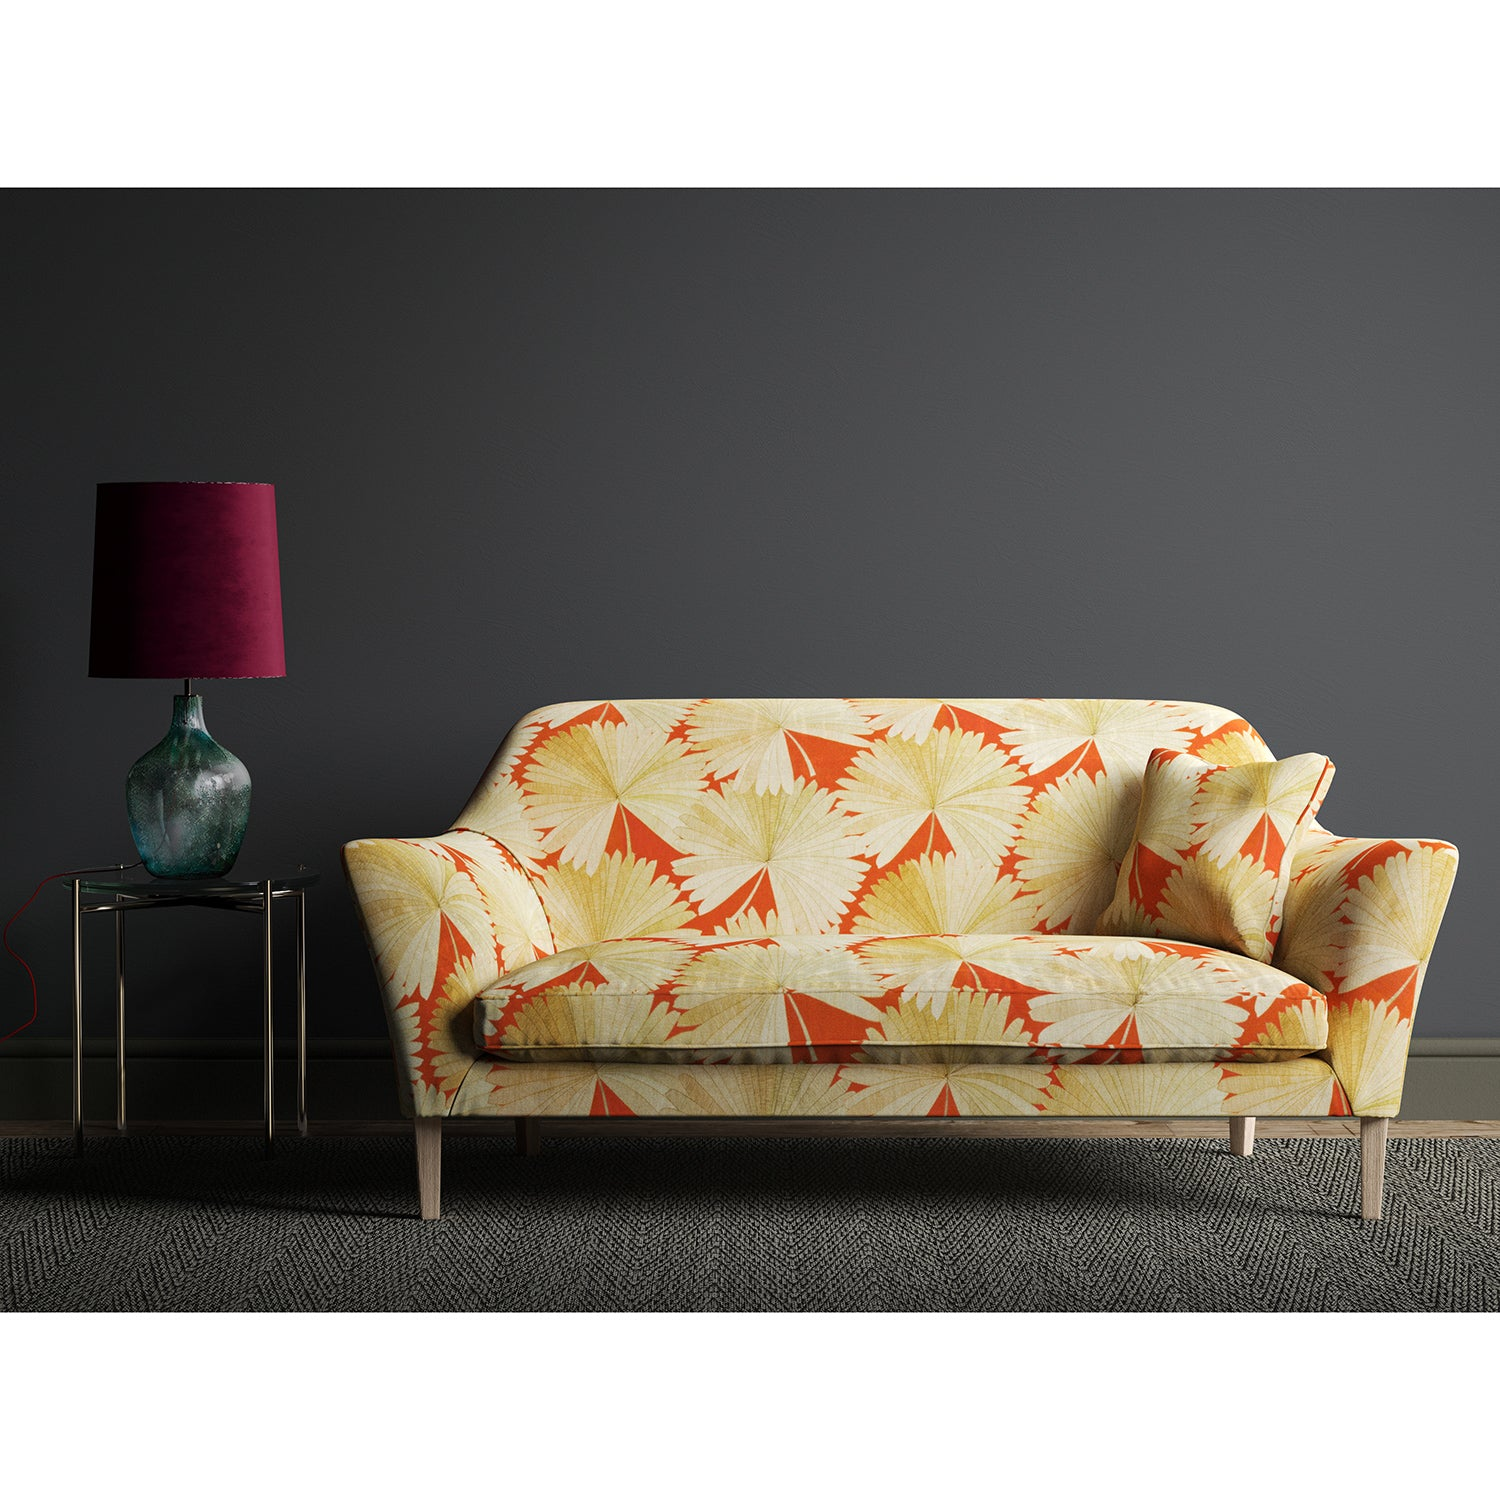 Sofa in a orange fabric with oriental printed fan design